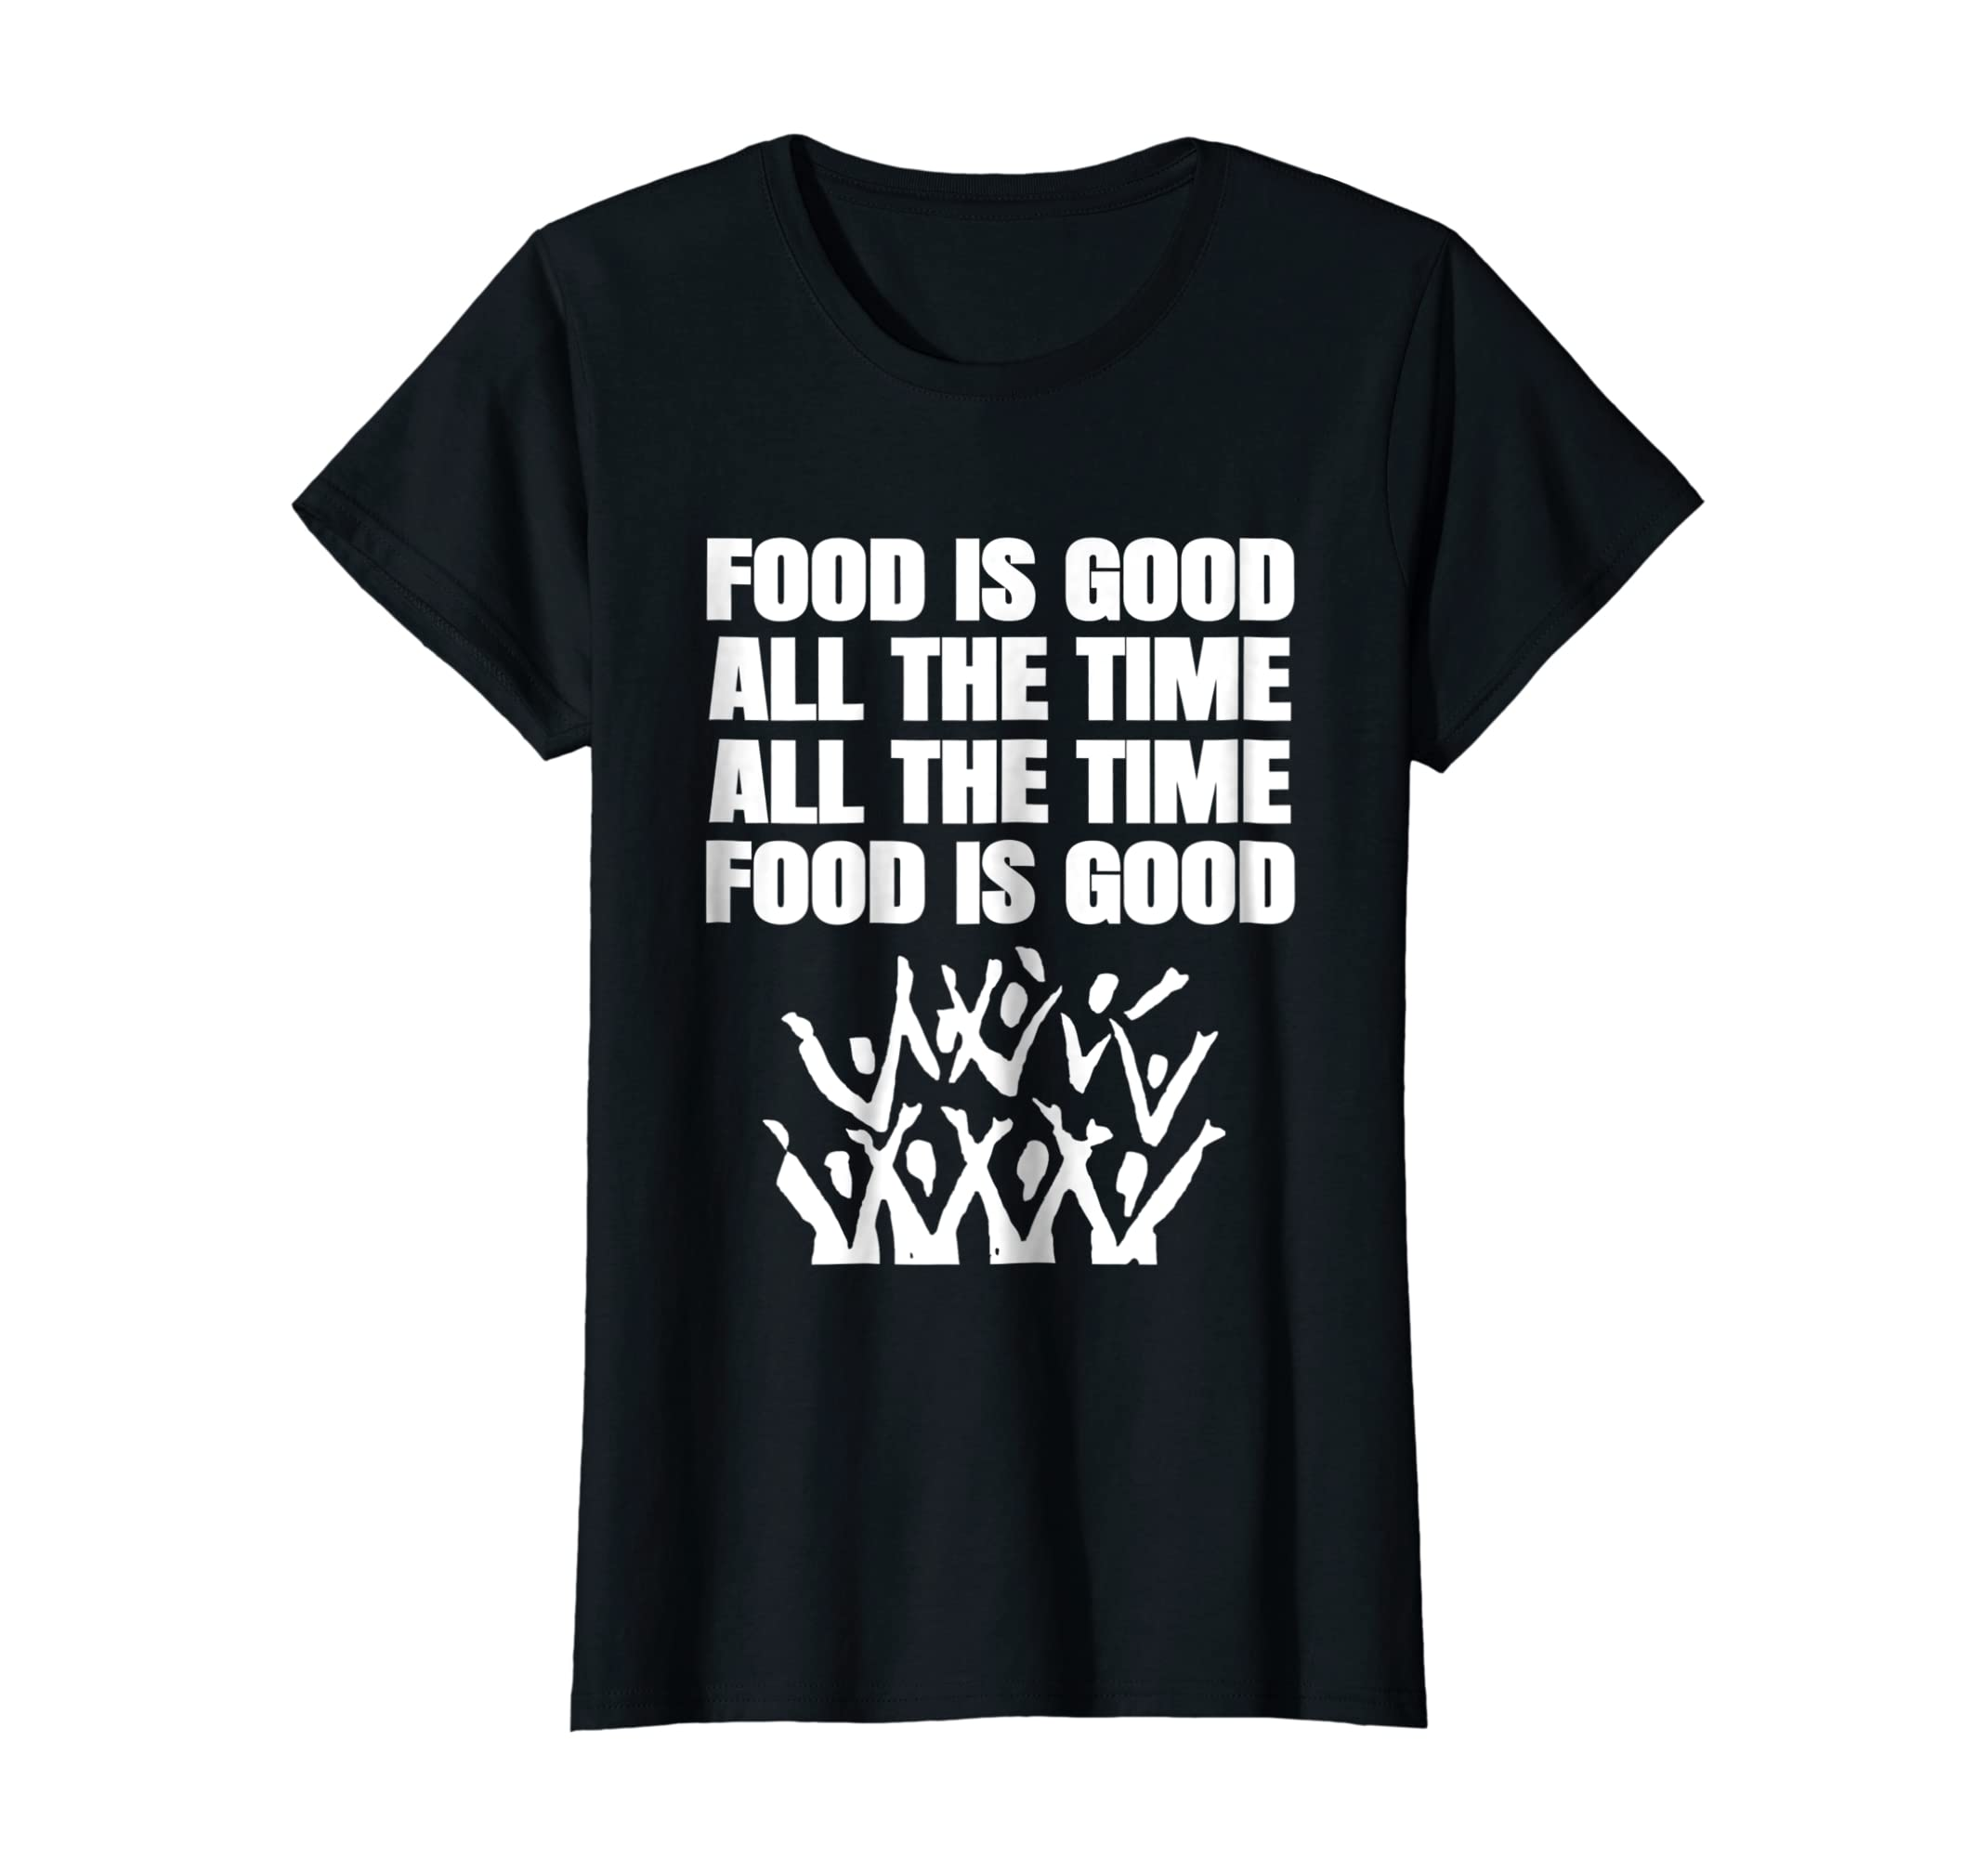 39f1a5f79f87 Amazon.com: Food Is Good All The Time T-Shirt Funny God Is Good Pun:  Clothing